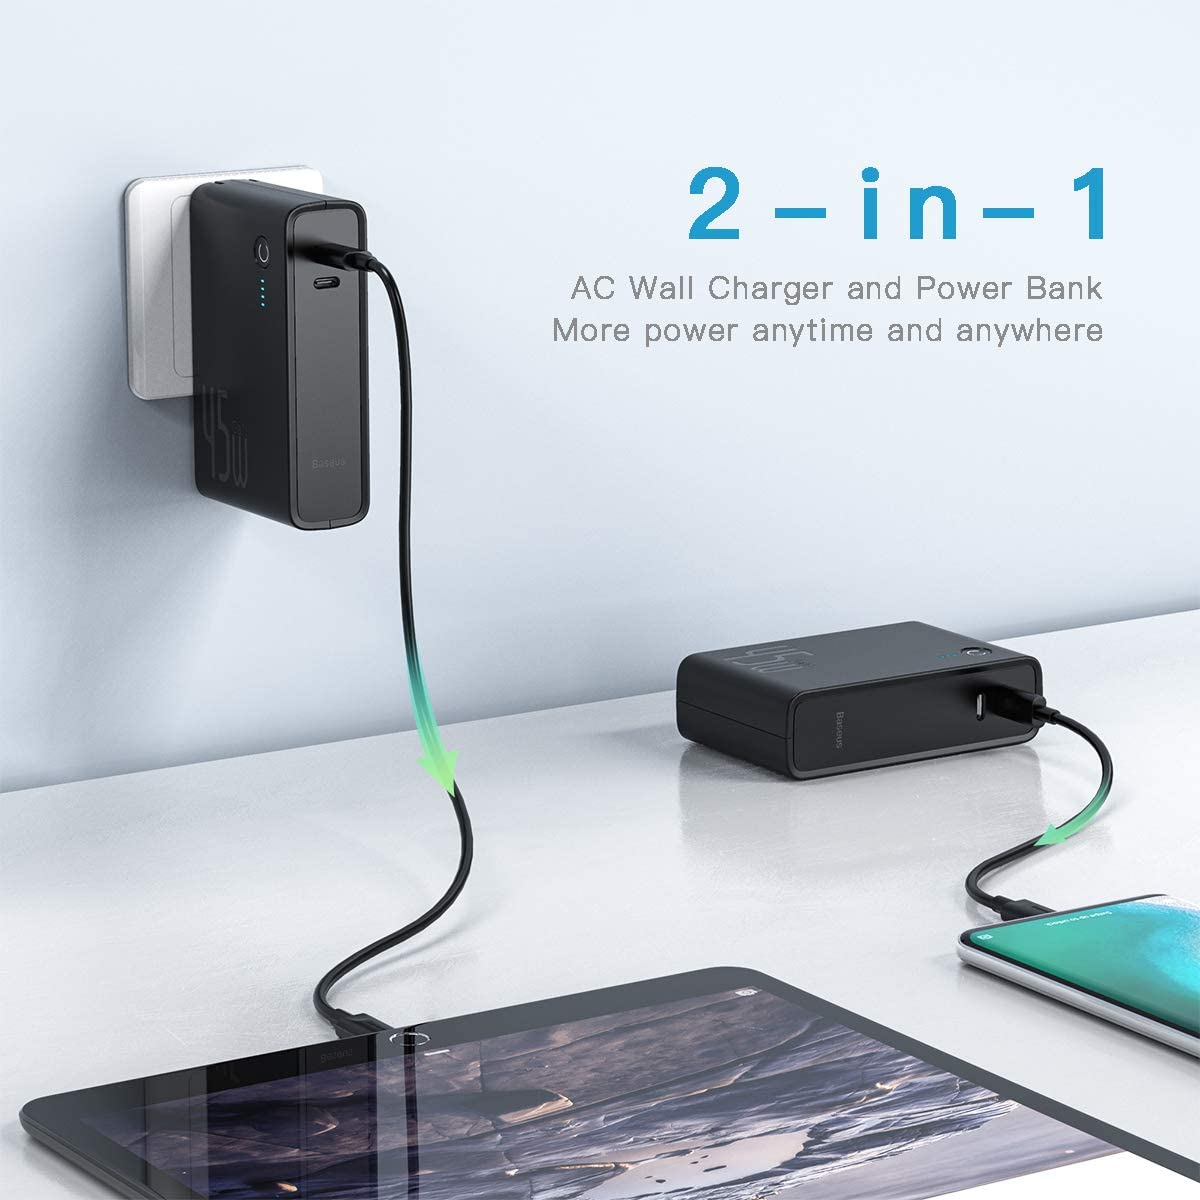 Baseus 2-in-1 10000mAh Power Bank